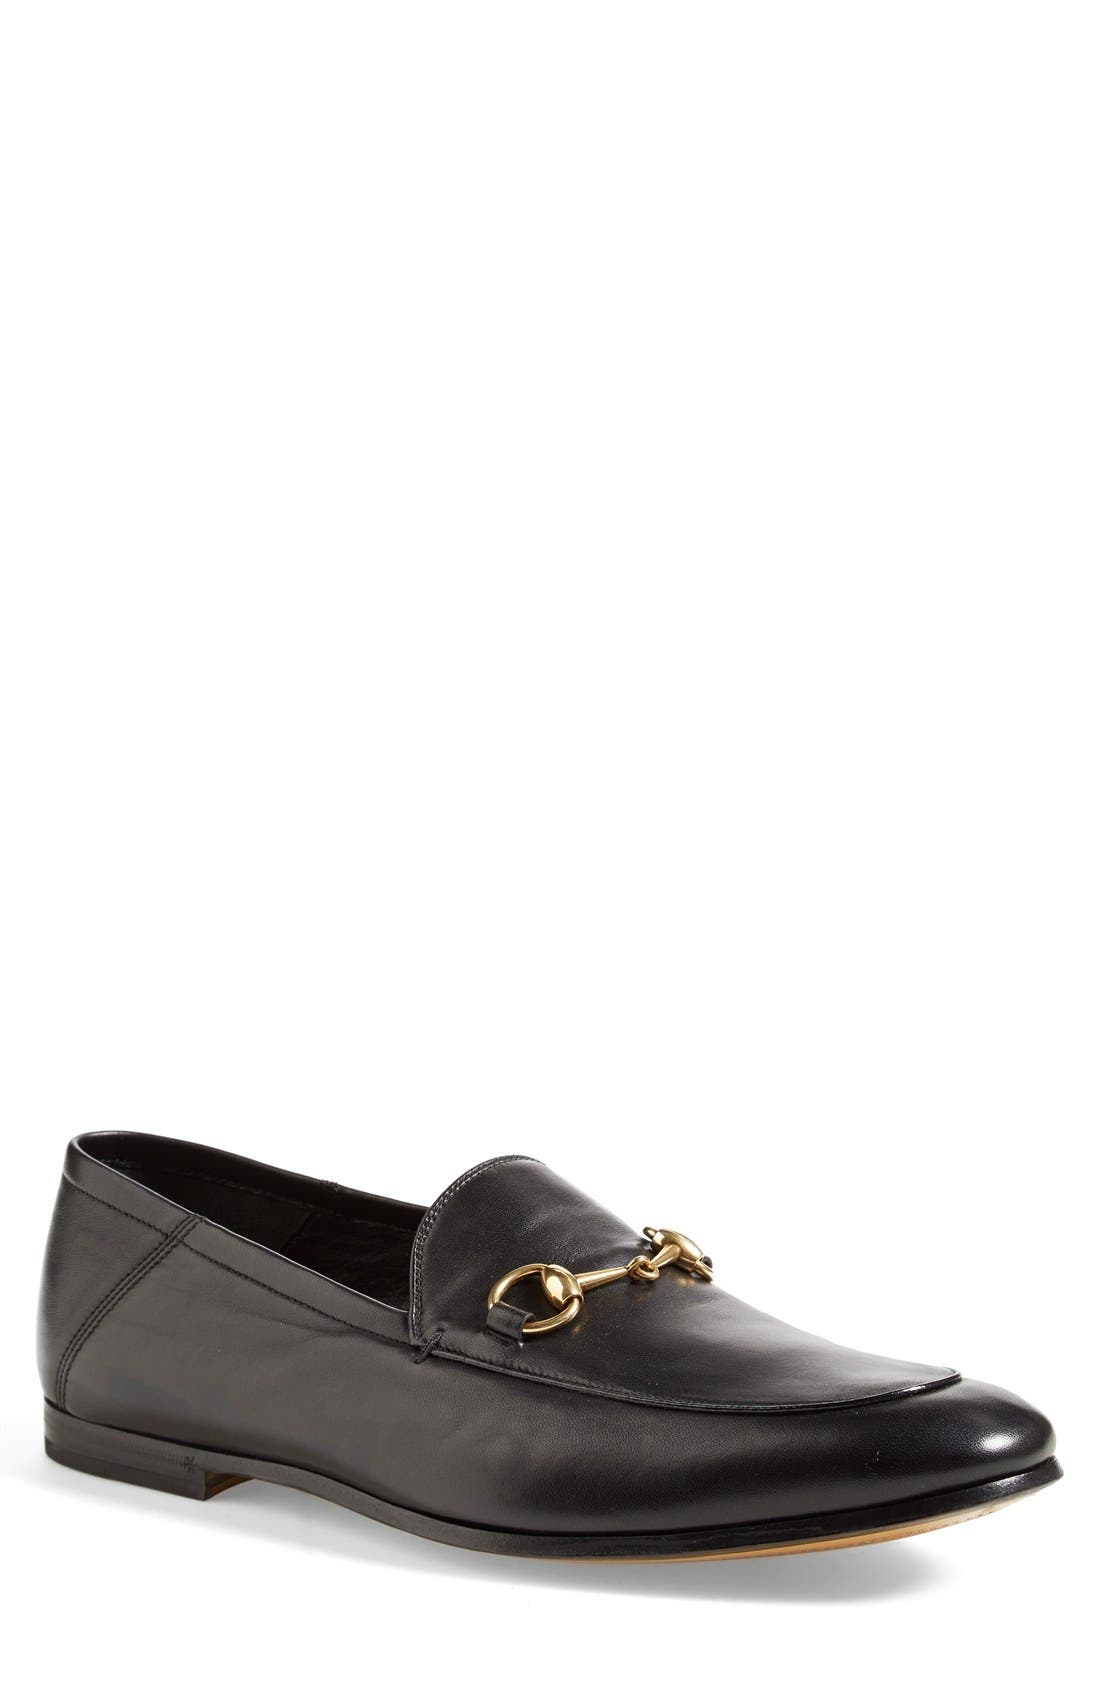 GUCCI, Brixton Leather Loafer, Main thumbnail 1, color, NERO LEATHER